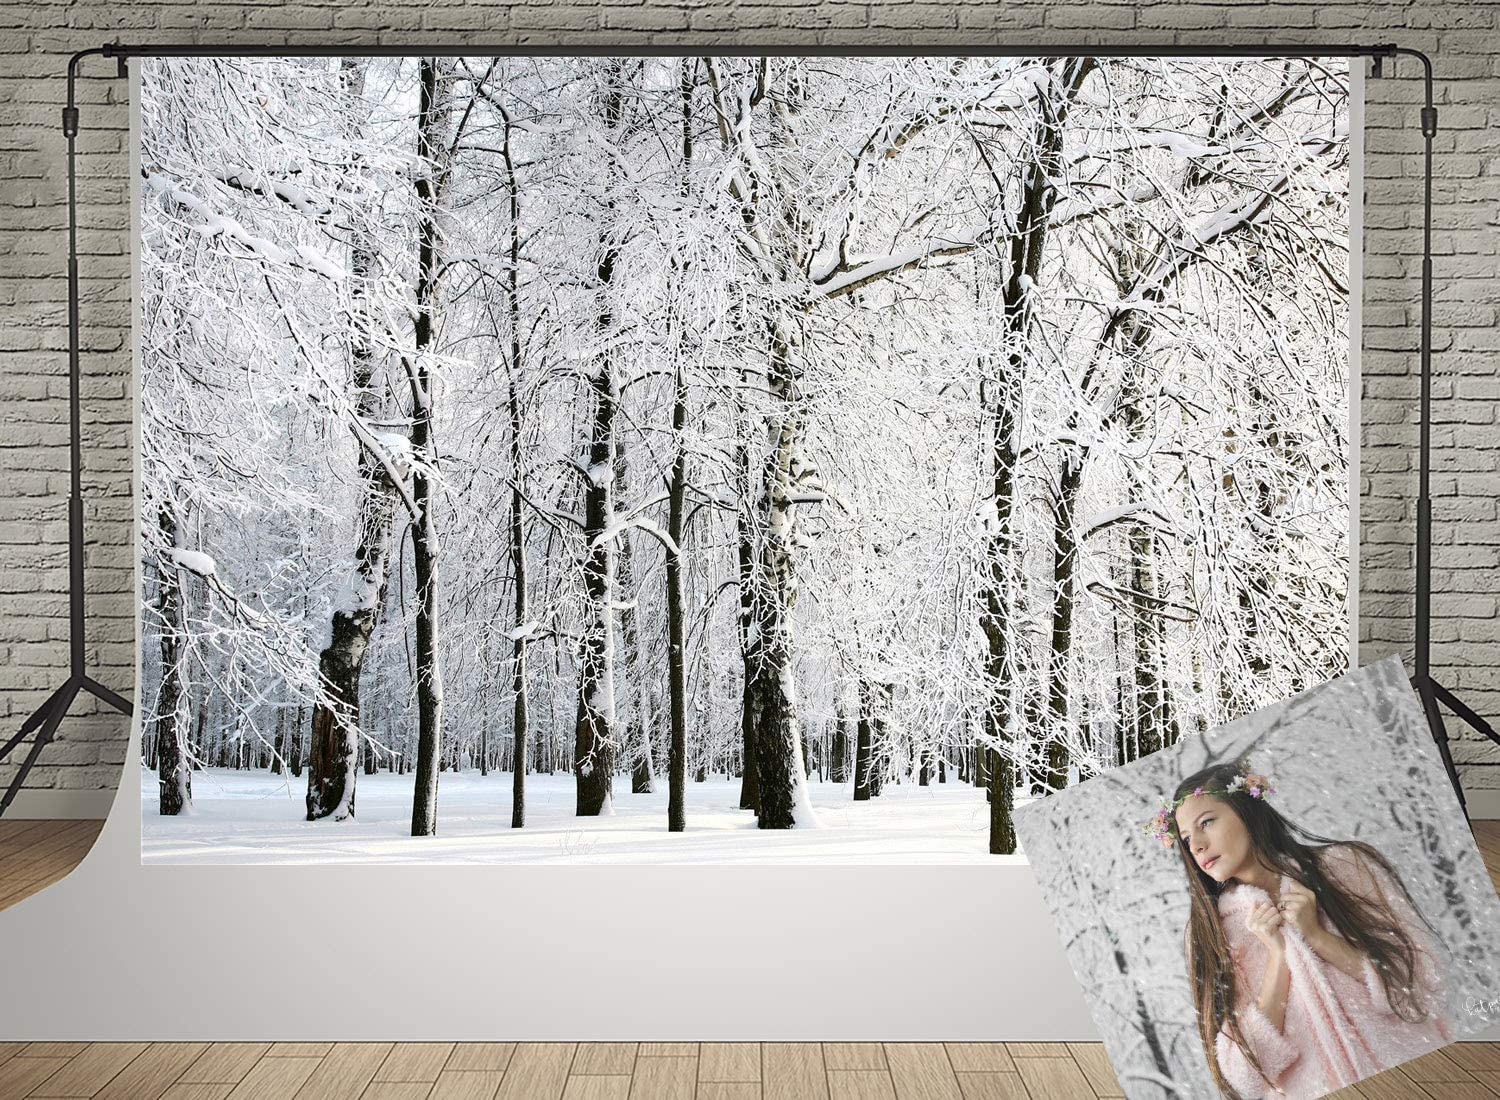 Winter Background for Photography White Frozen Snow Backdrops Forest Tree Photo Backdrop 20x10ft